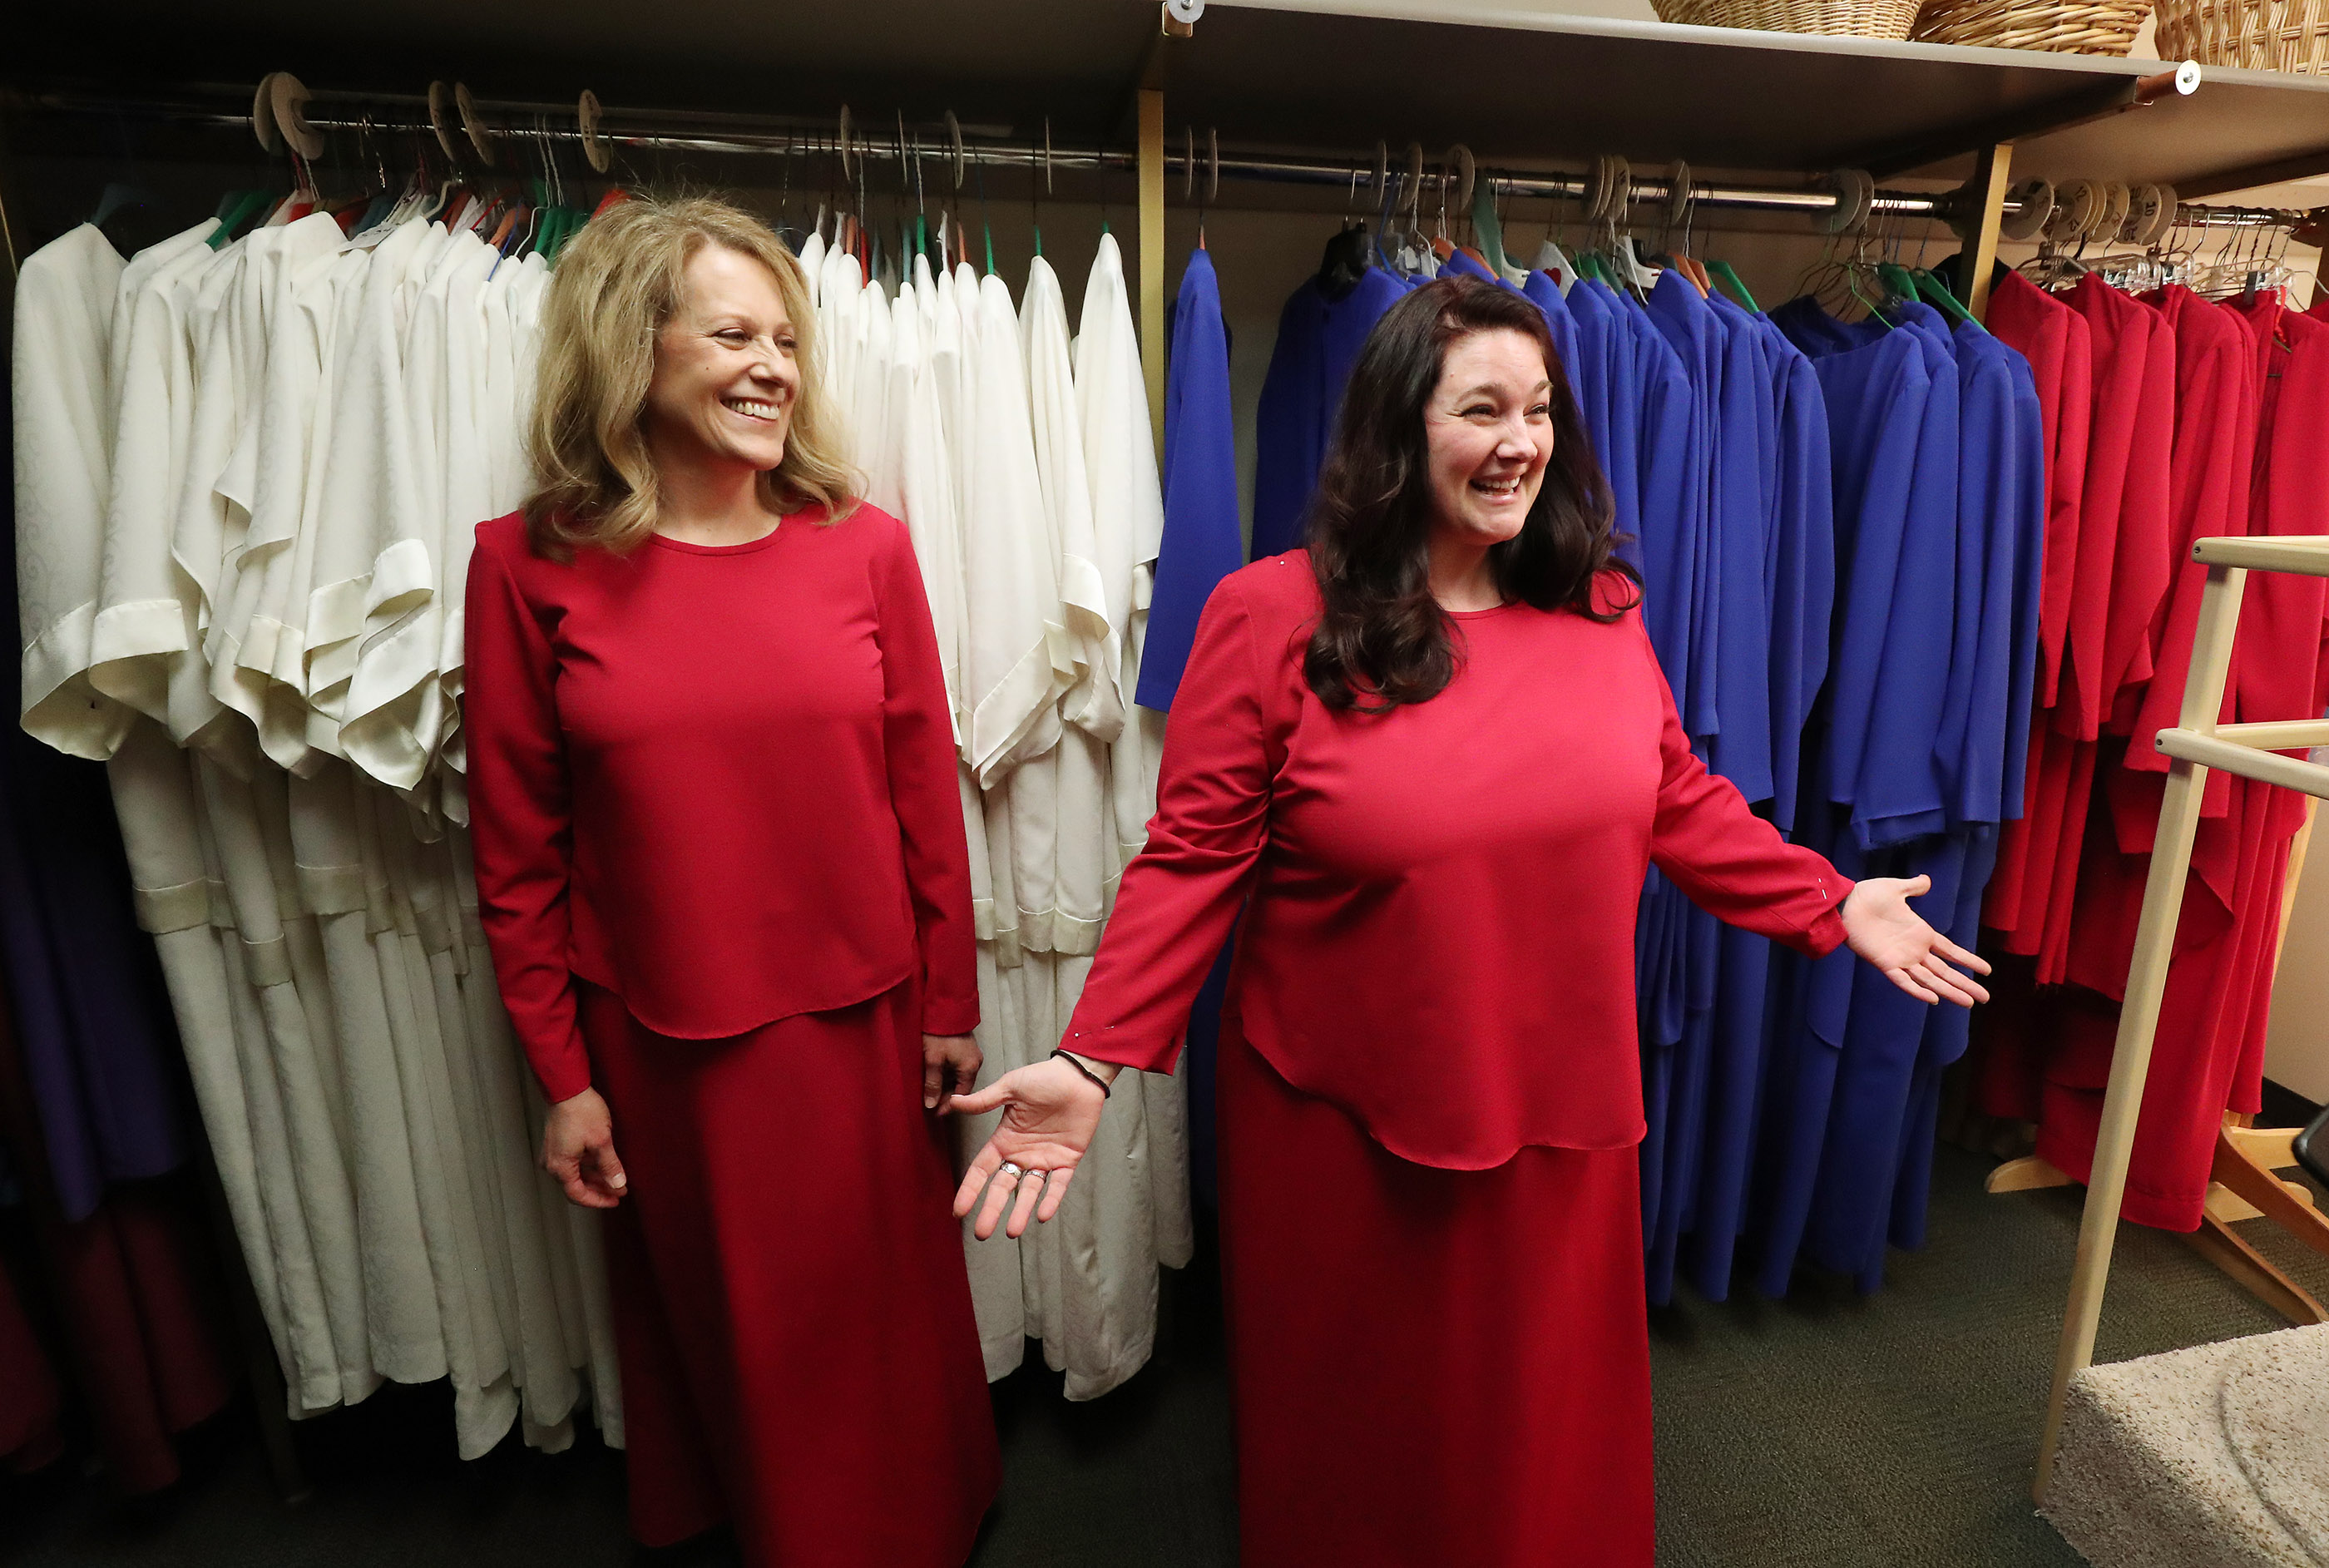 Debbie Matheson, left, and McKenna Reynolds try on dresses in preparation to sing with The Tabernacle Choir at Temple Square during a rehearsal in Salt Lake City on Thursday, April 11, 2019. Four people were selected through social media to sing with the choir.